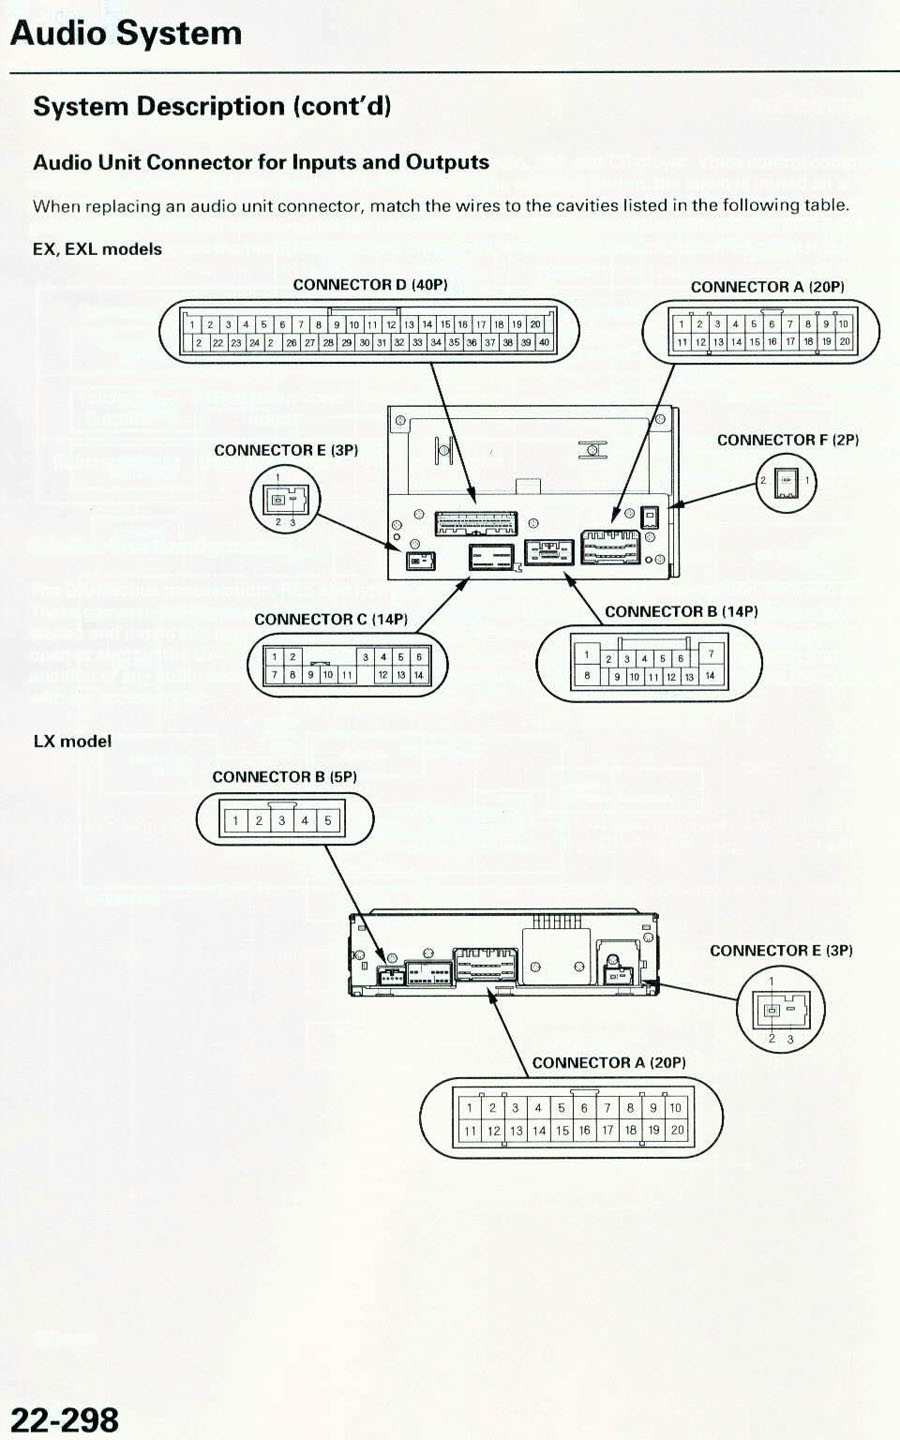 Lexus Rx330 Mark Levinson Wiring Diagram 40 Images 2004 Radio 32903d1198615435 Loud Hissing After Amp Install Audio Connector 2006a Honda Pilot